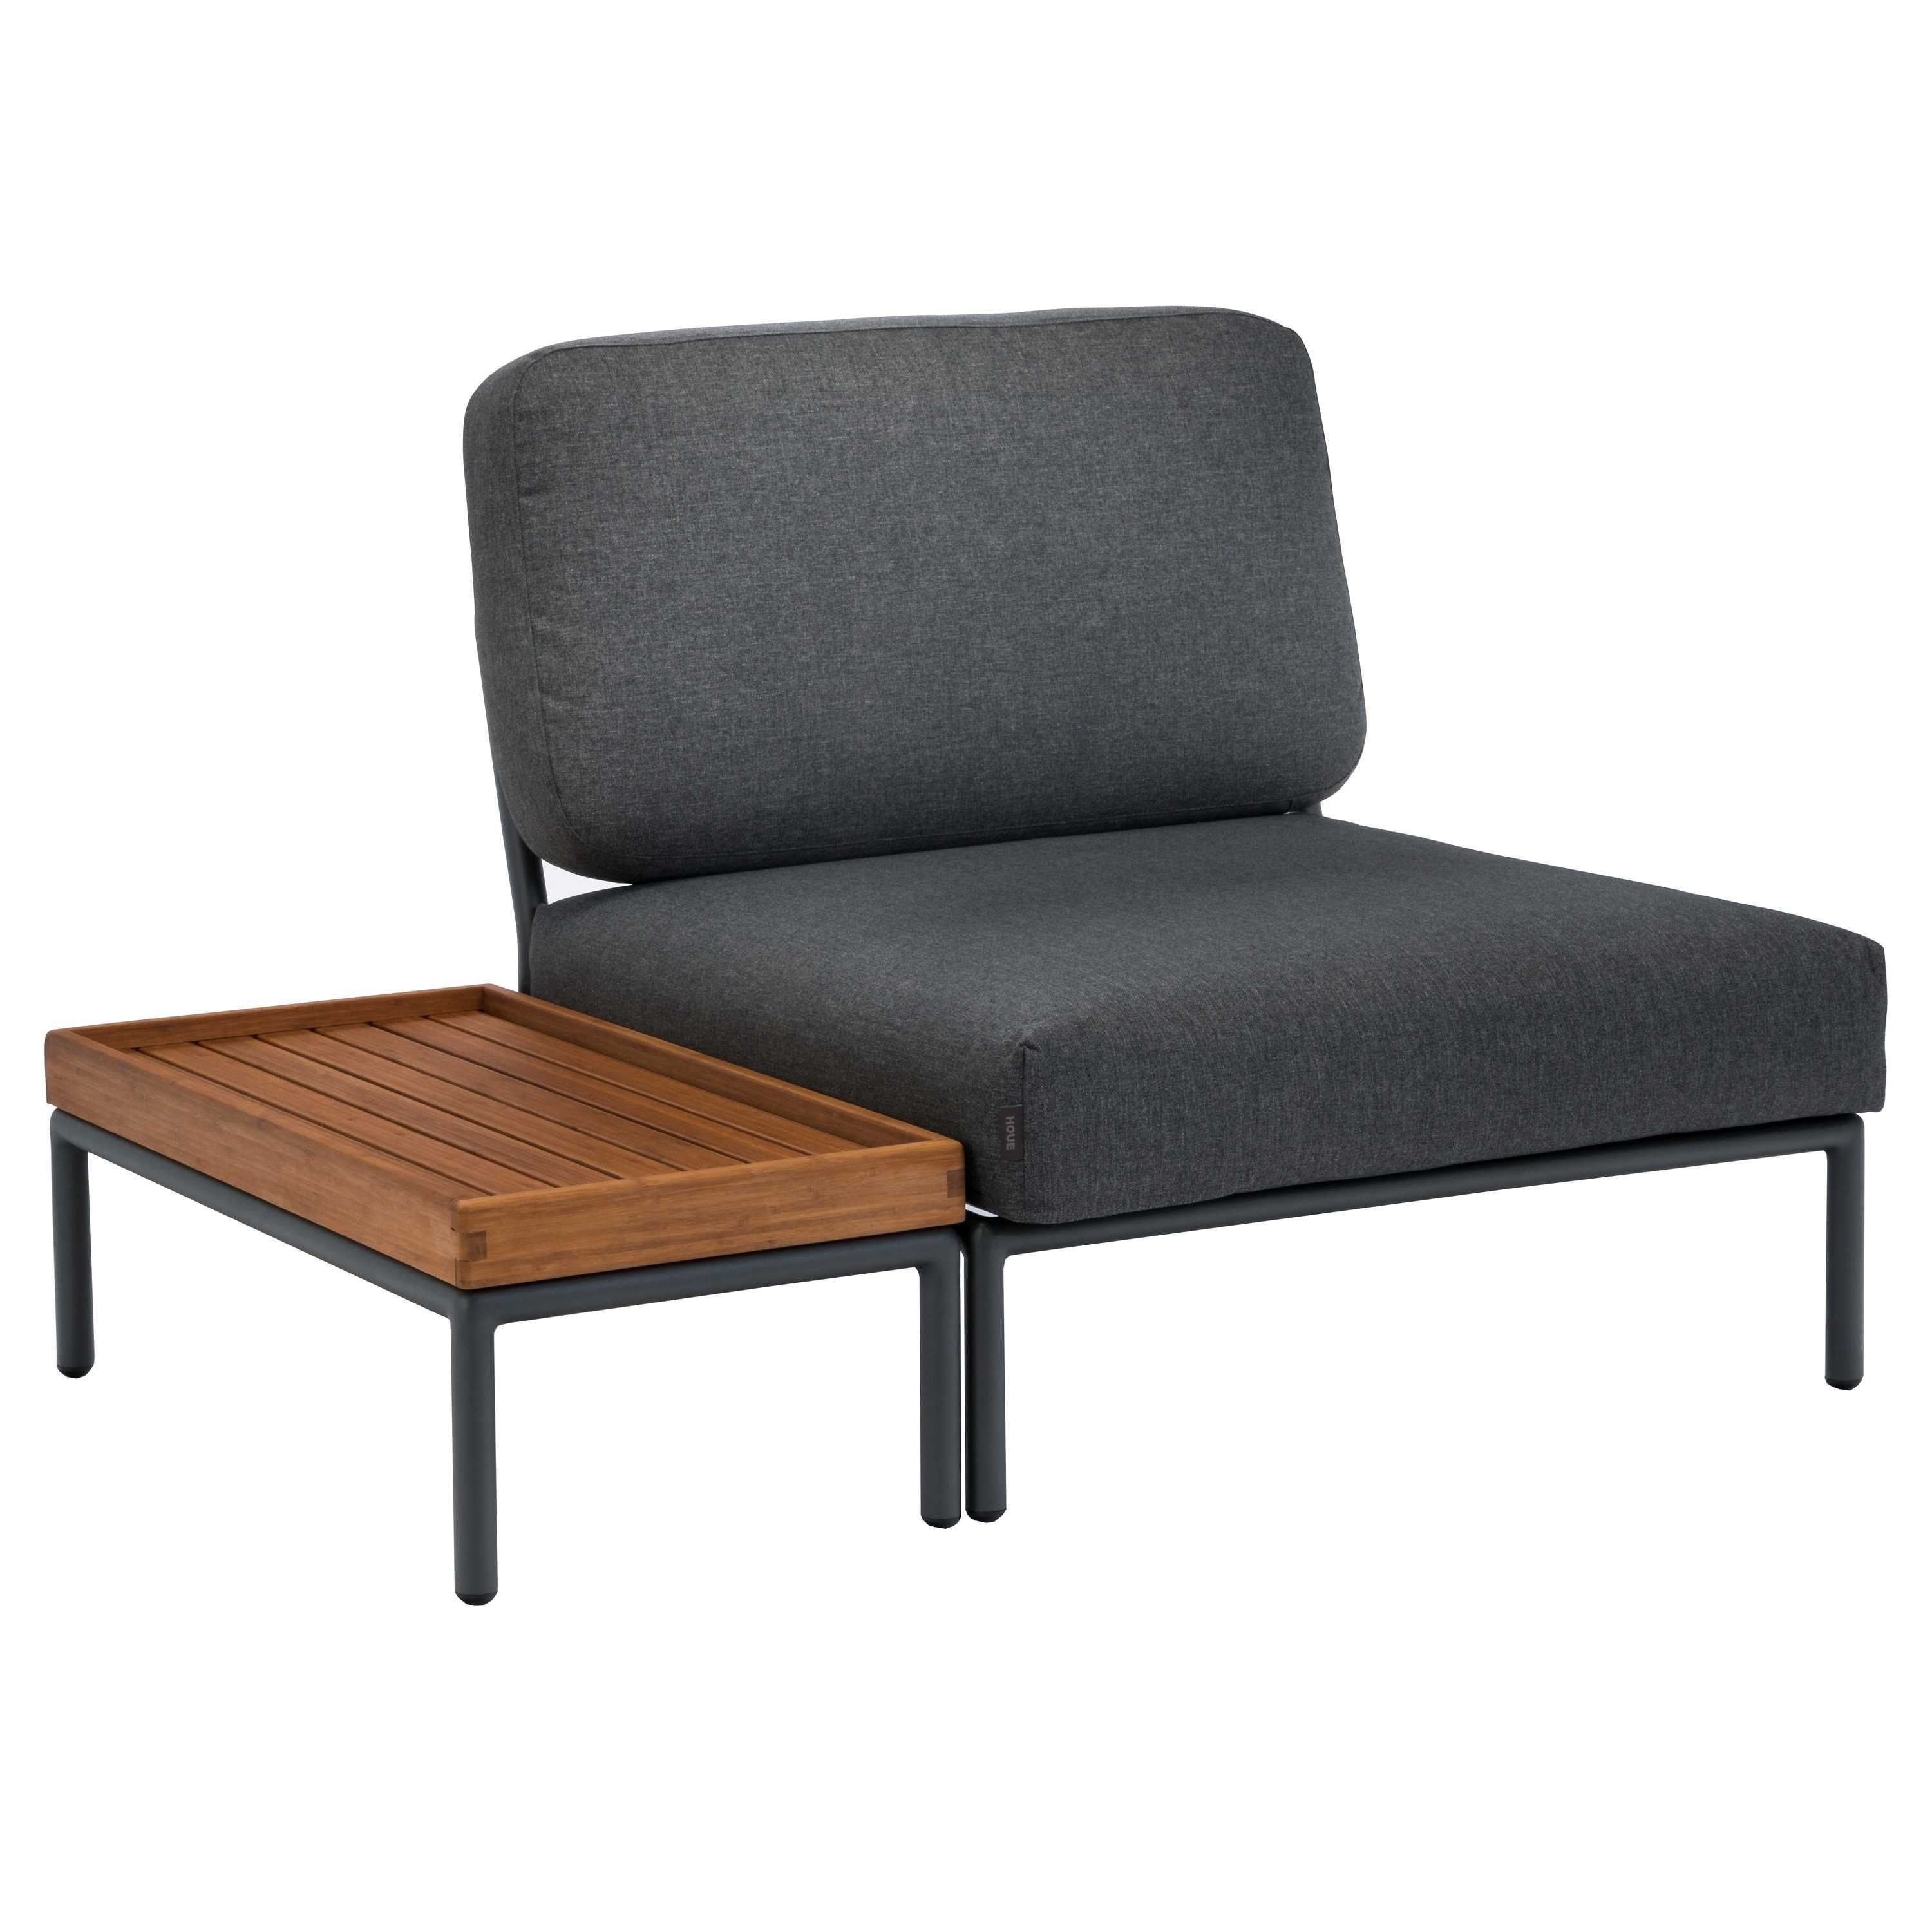 Houe Sessel Houe Level Loungeset Outdoor 4 Flinders Versendet Gratis